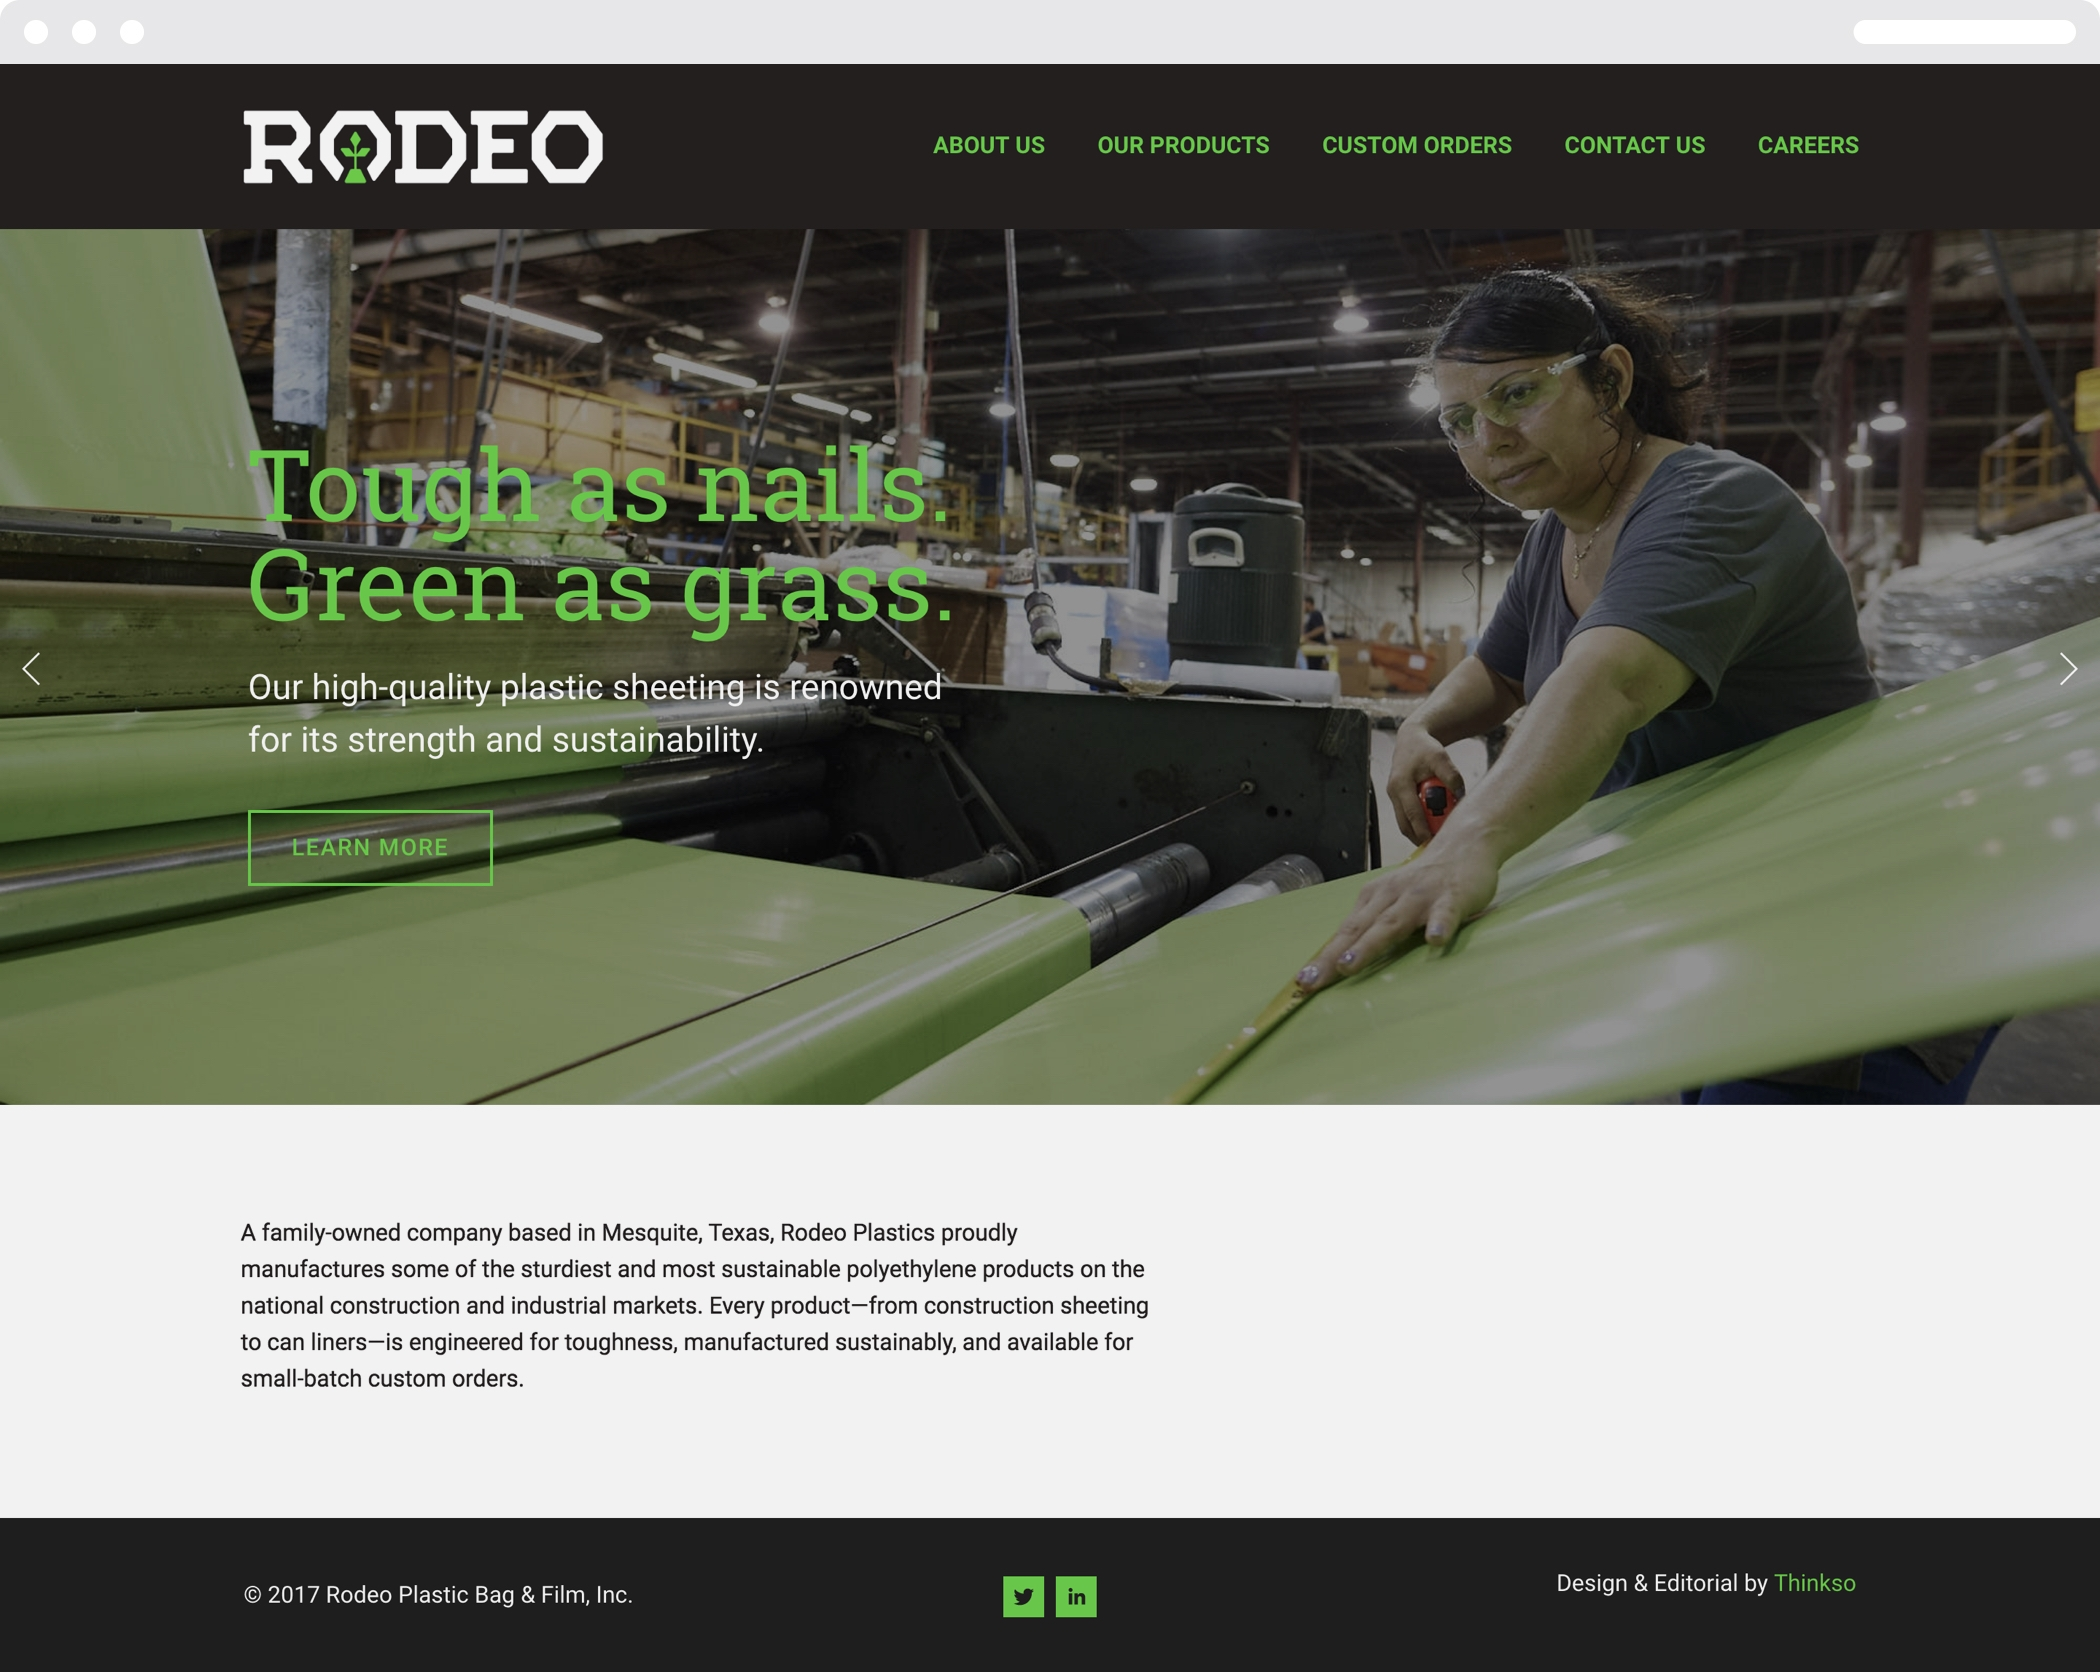 """The Rodeo Plastics Wed homepage with the company logo and headline """"Tough as nails, green as grass."""""""